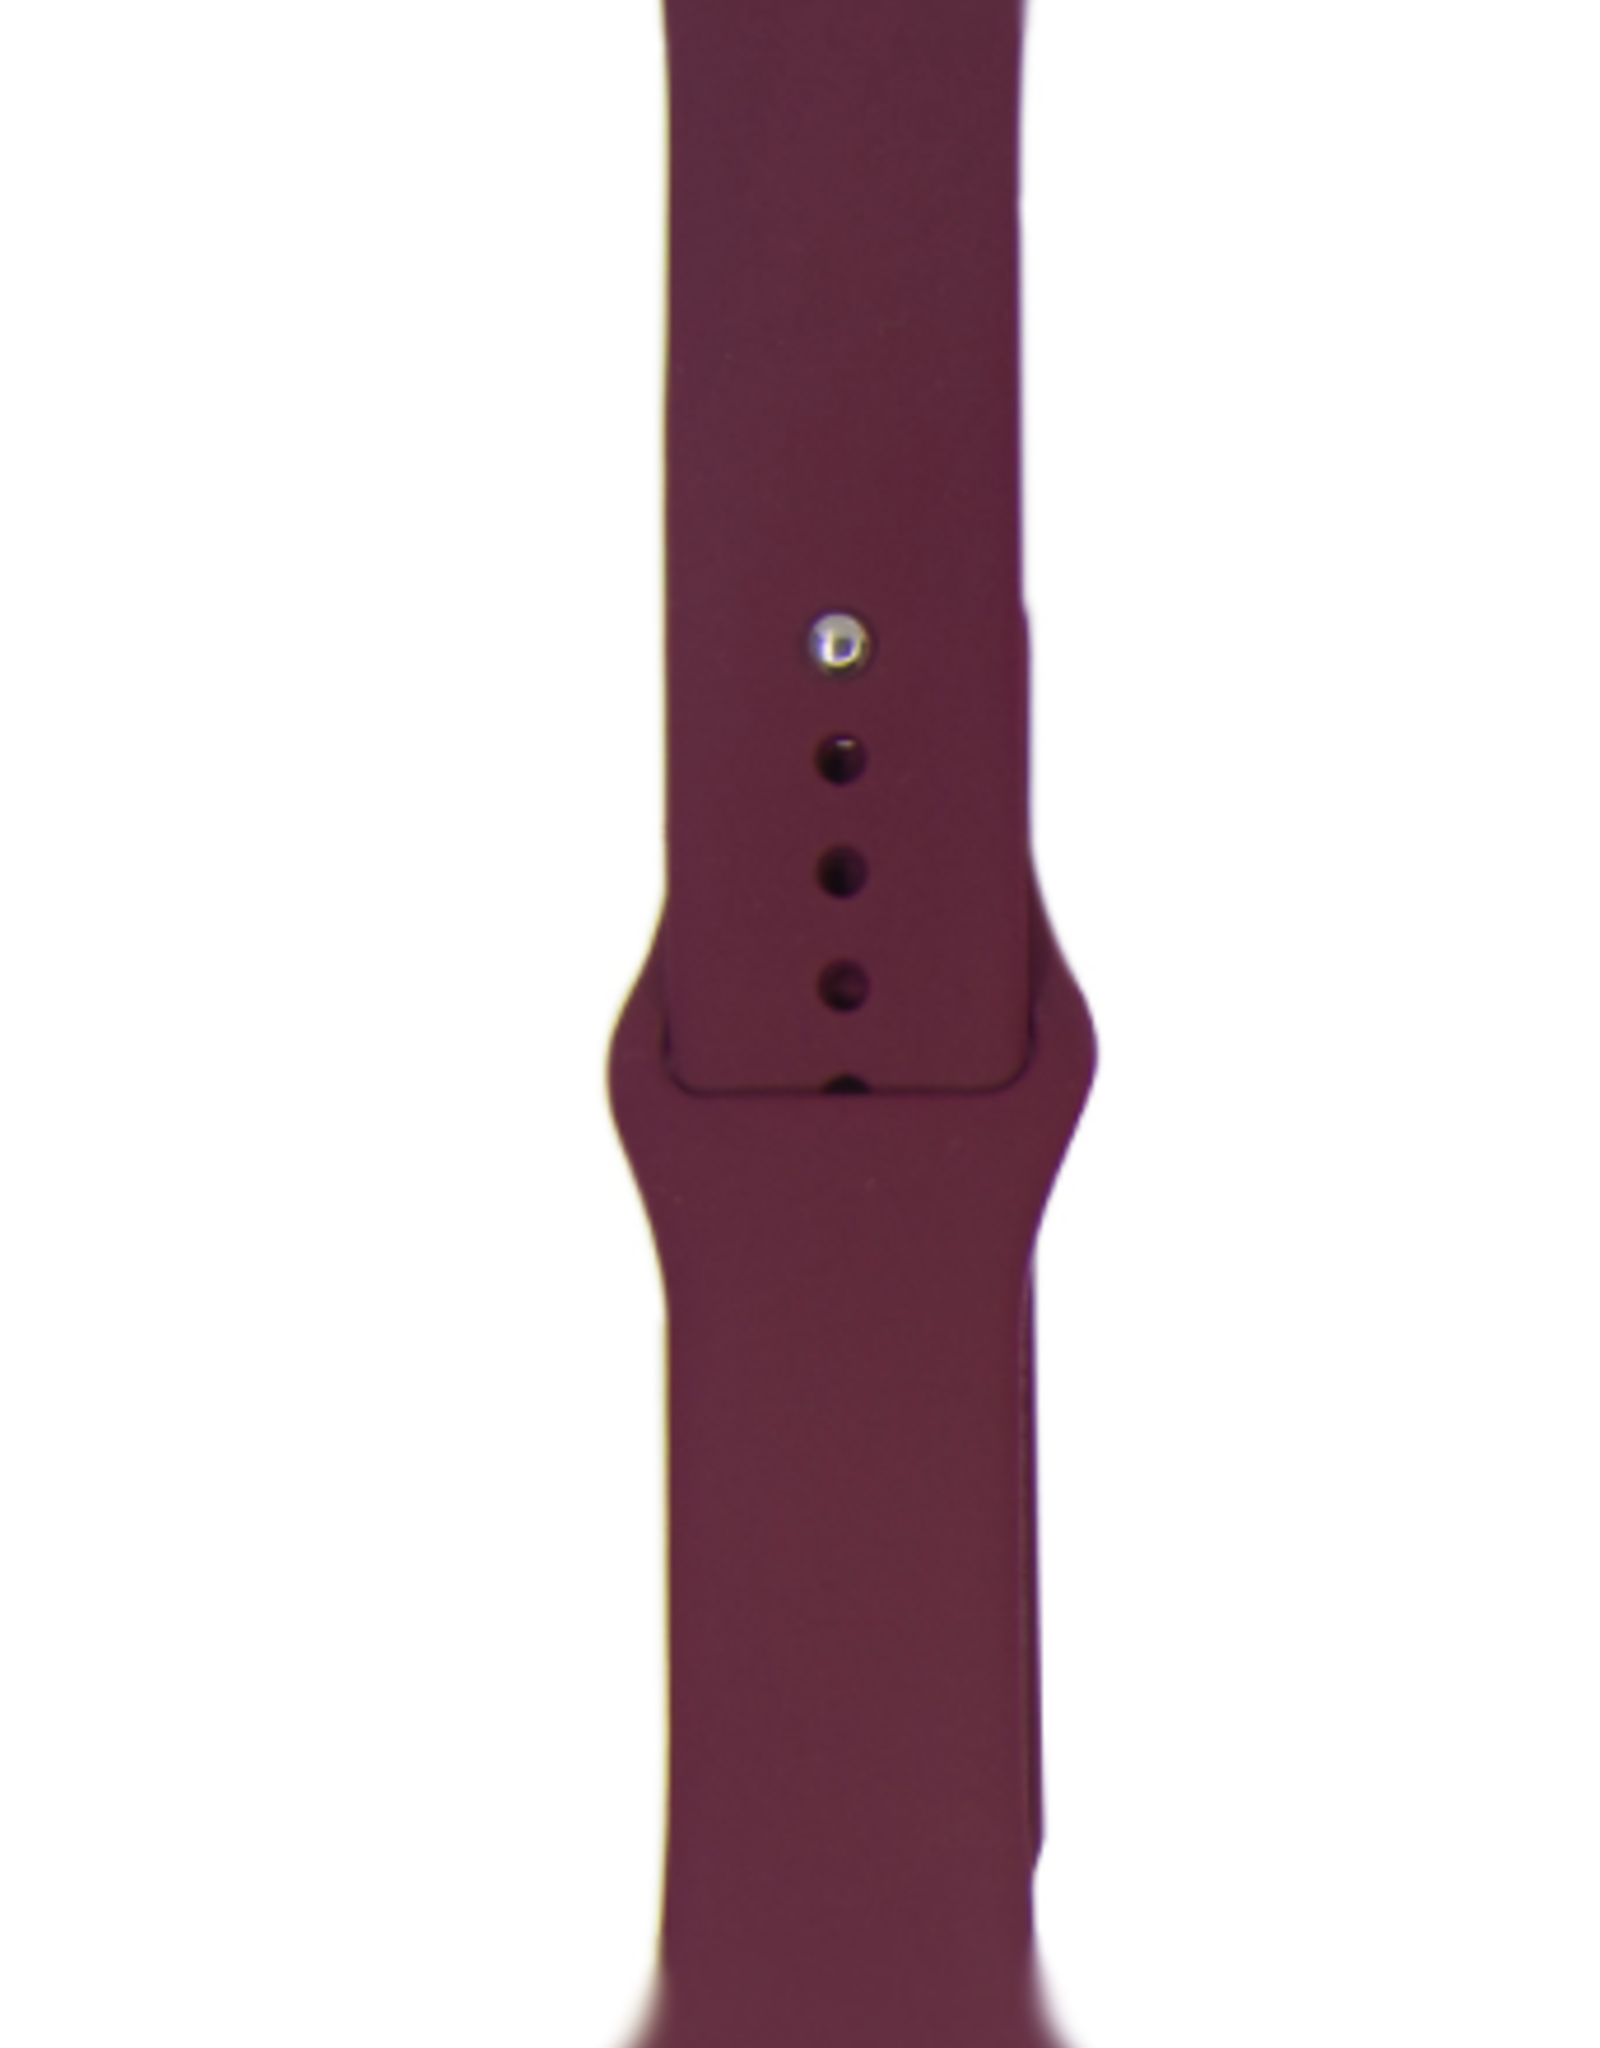 Silicone band for Apple Watch Color:# 2 Wine Red 38/40mm S/M